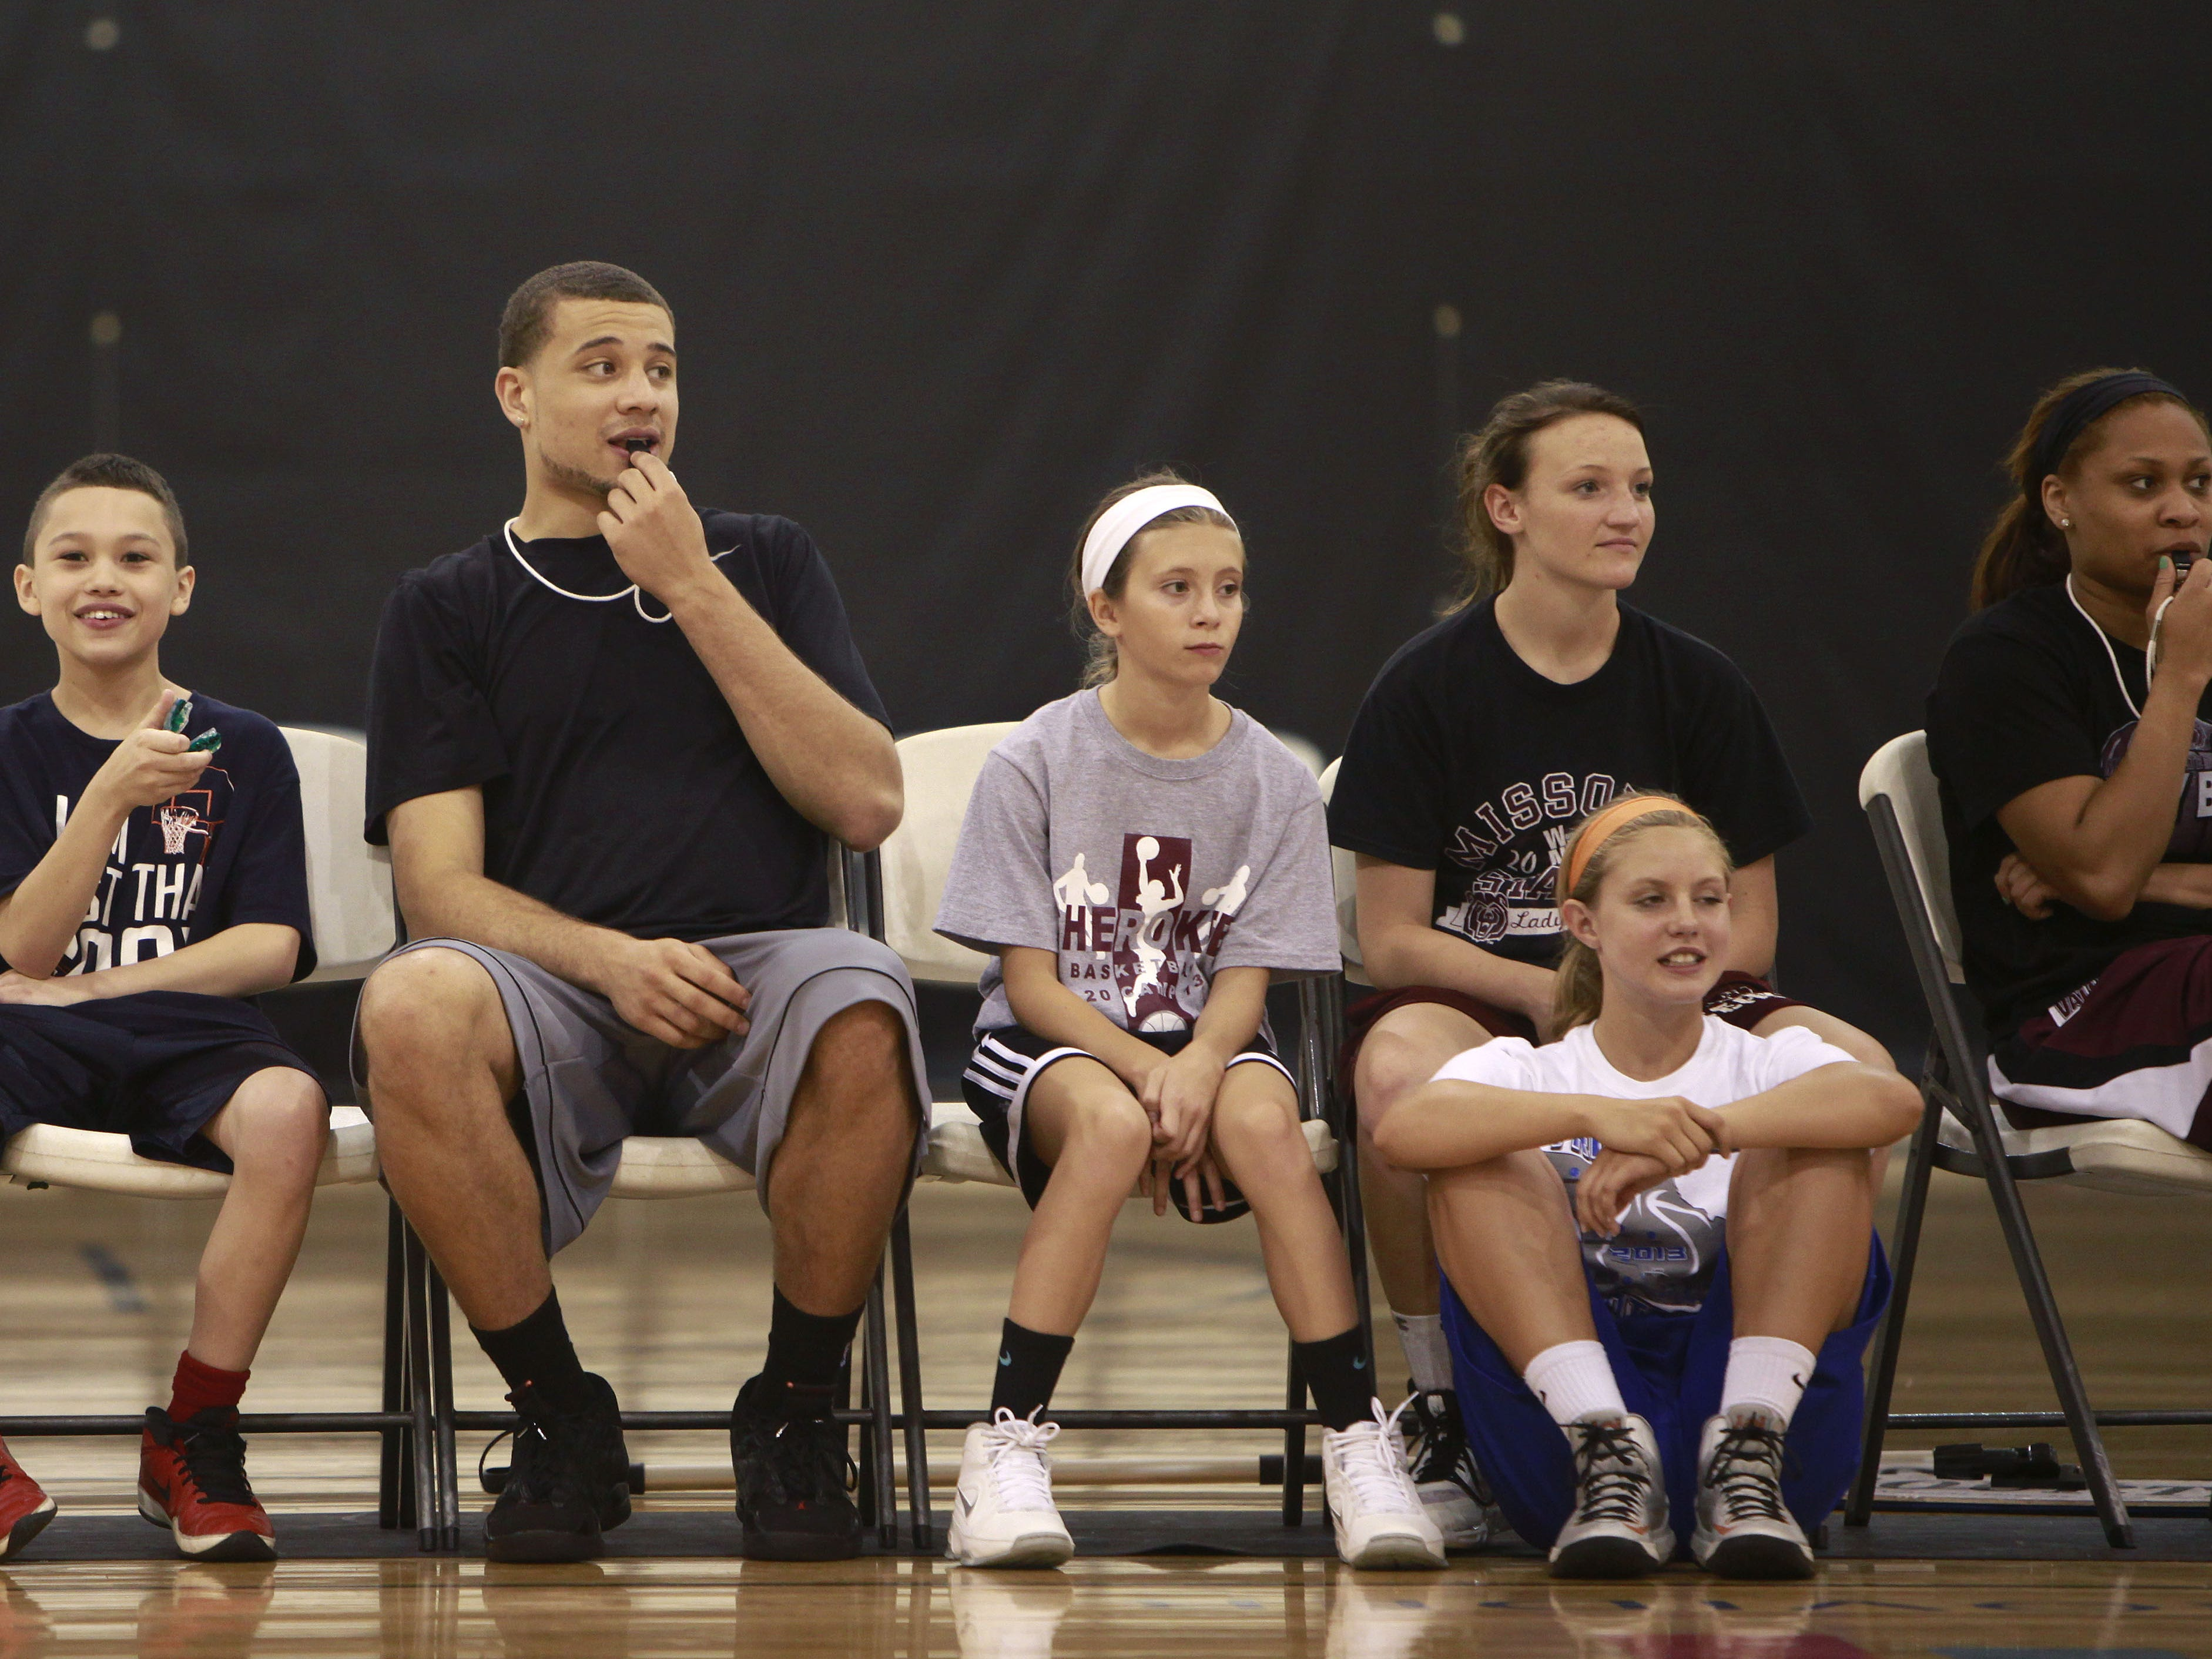 Former Missouri State basketball player Kyle Weems sits on the bench with kids in his basketball camp at The Courts on Tuesday, June 25, 2013.